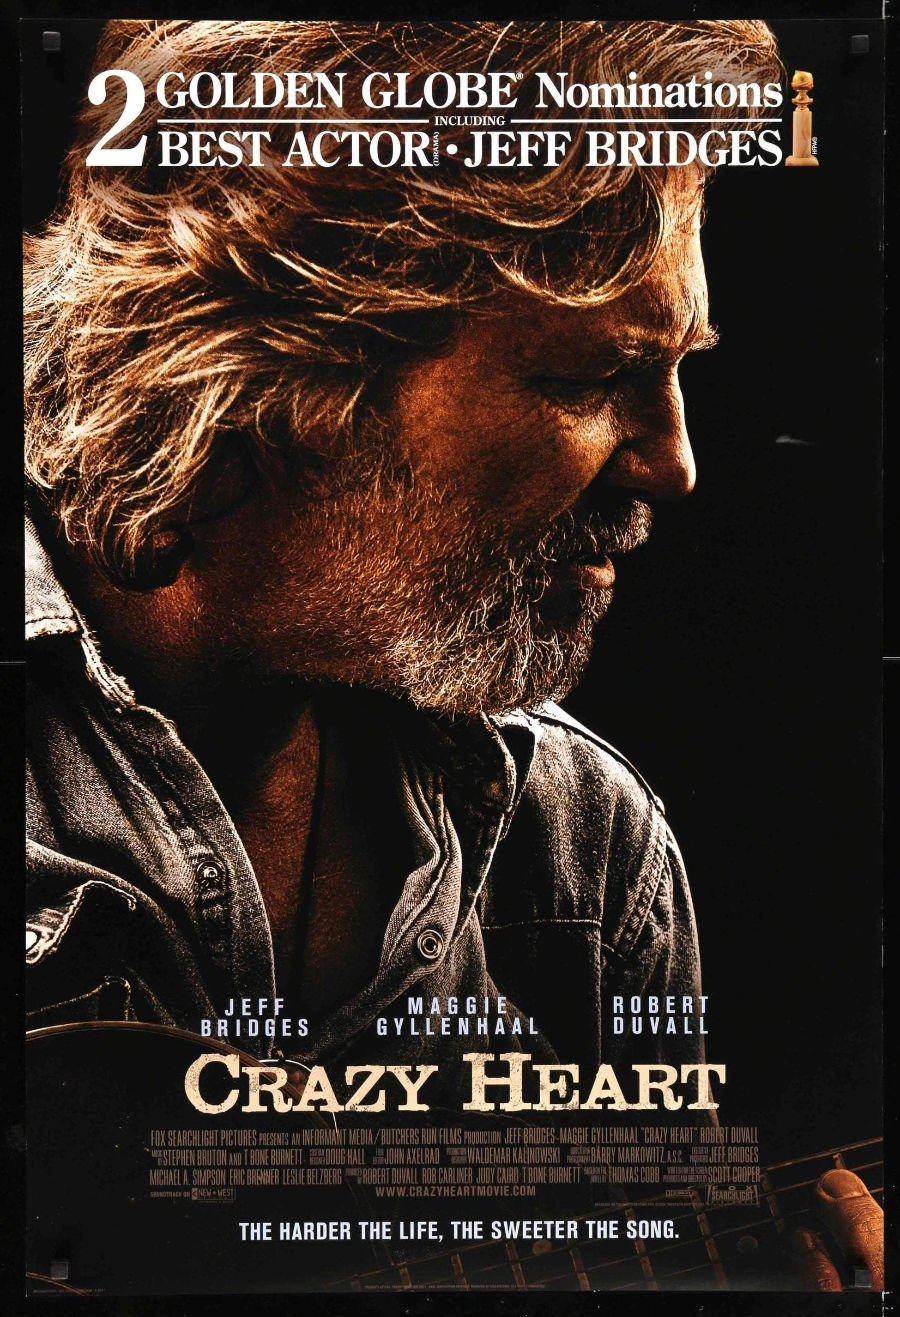 Notes On A Film: Crazy Heart